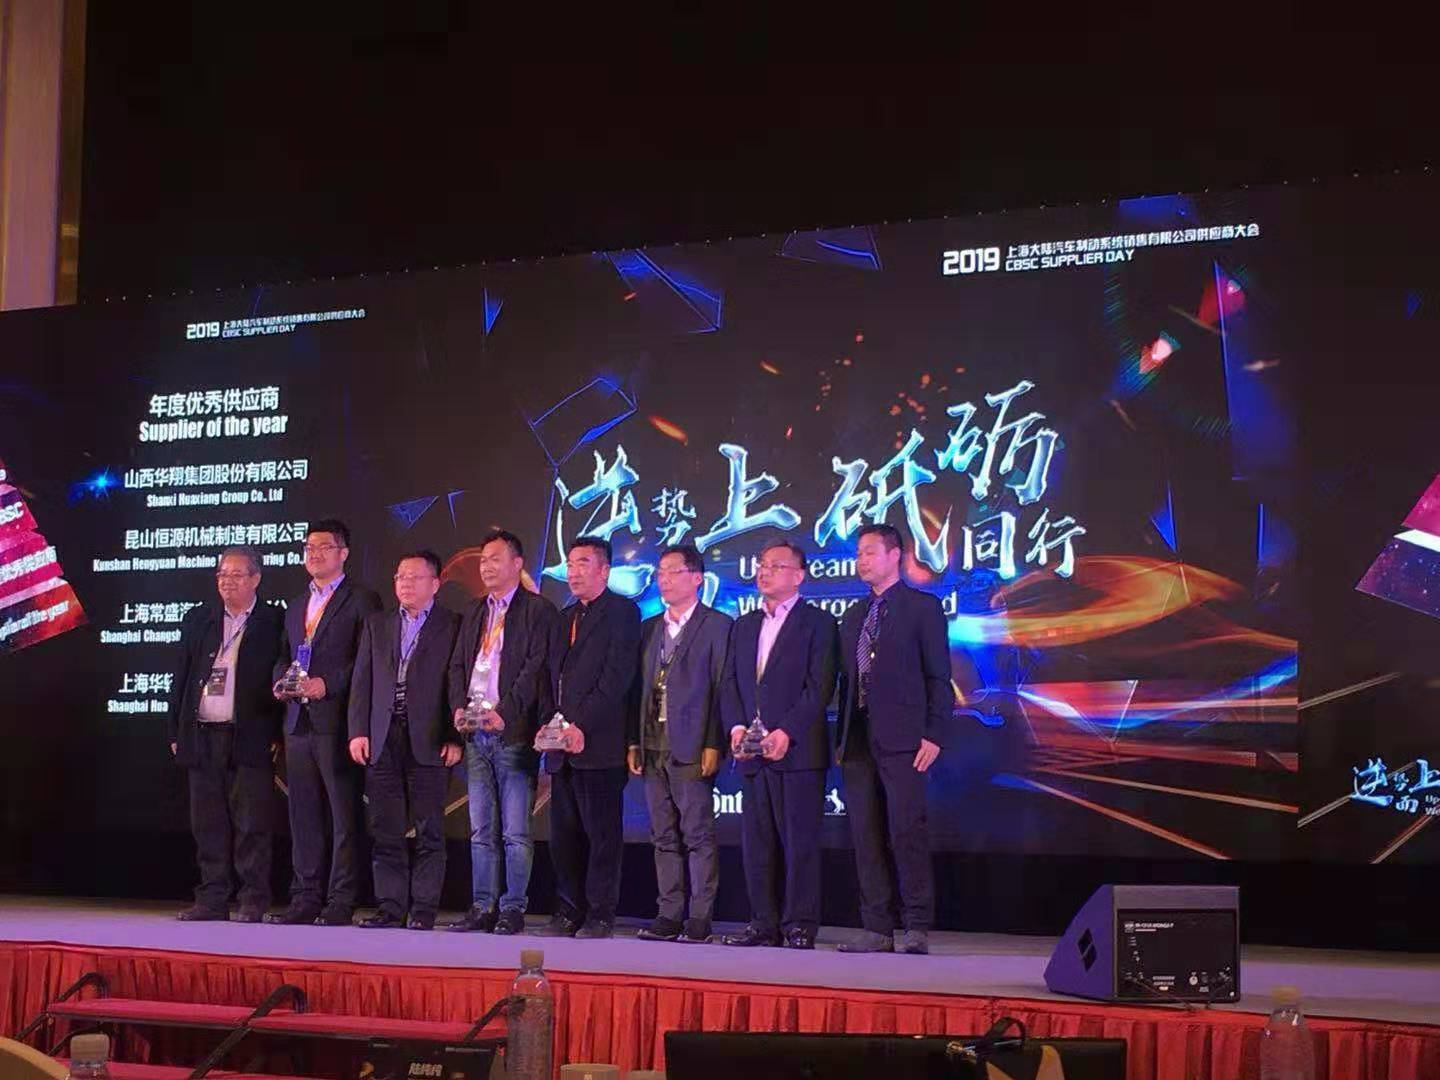 Congratulations to our company for winning the excellent supplier award in mainland China for three